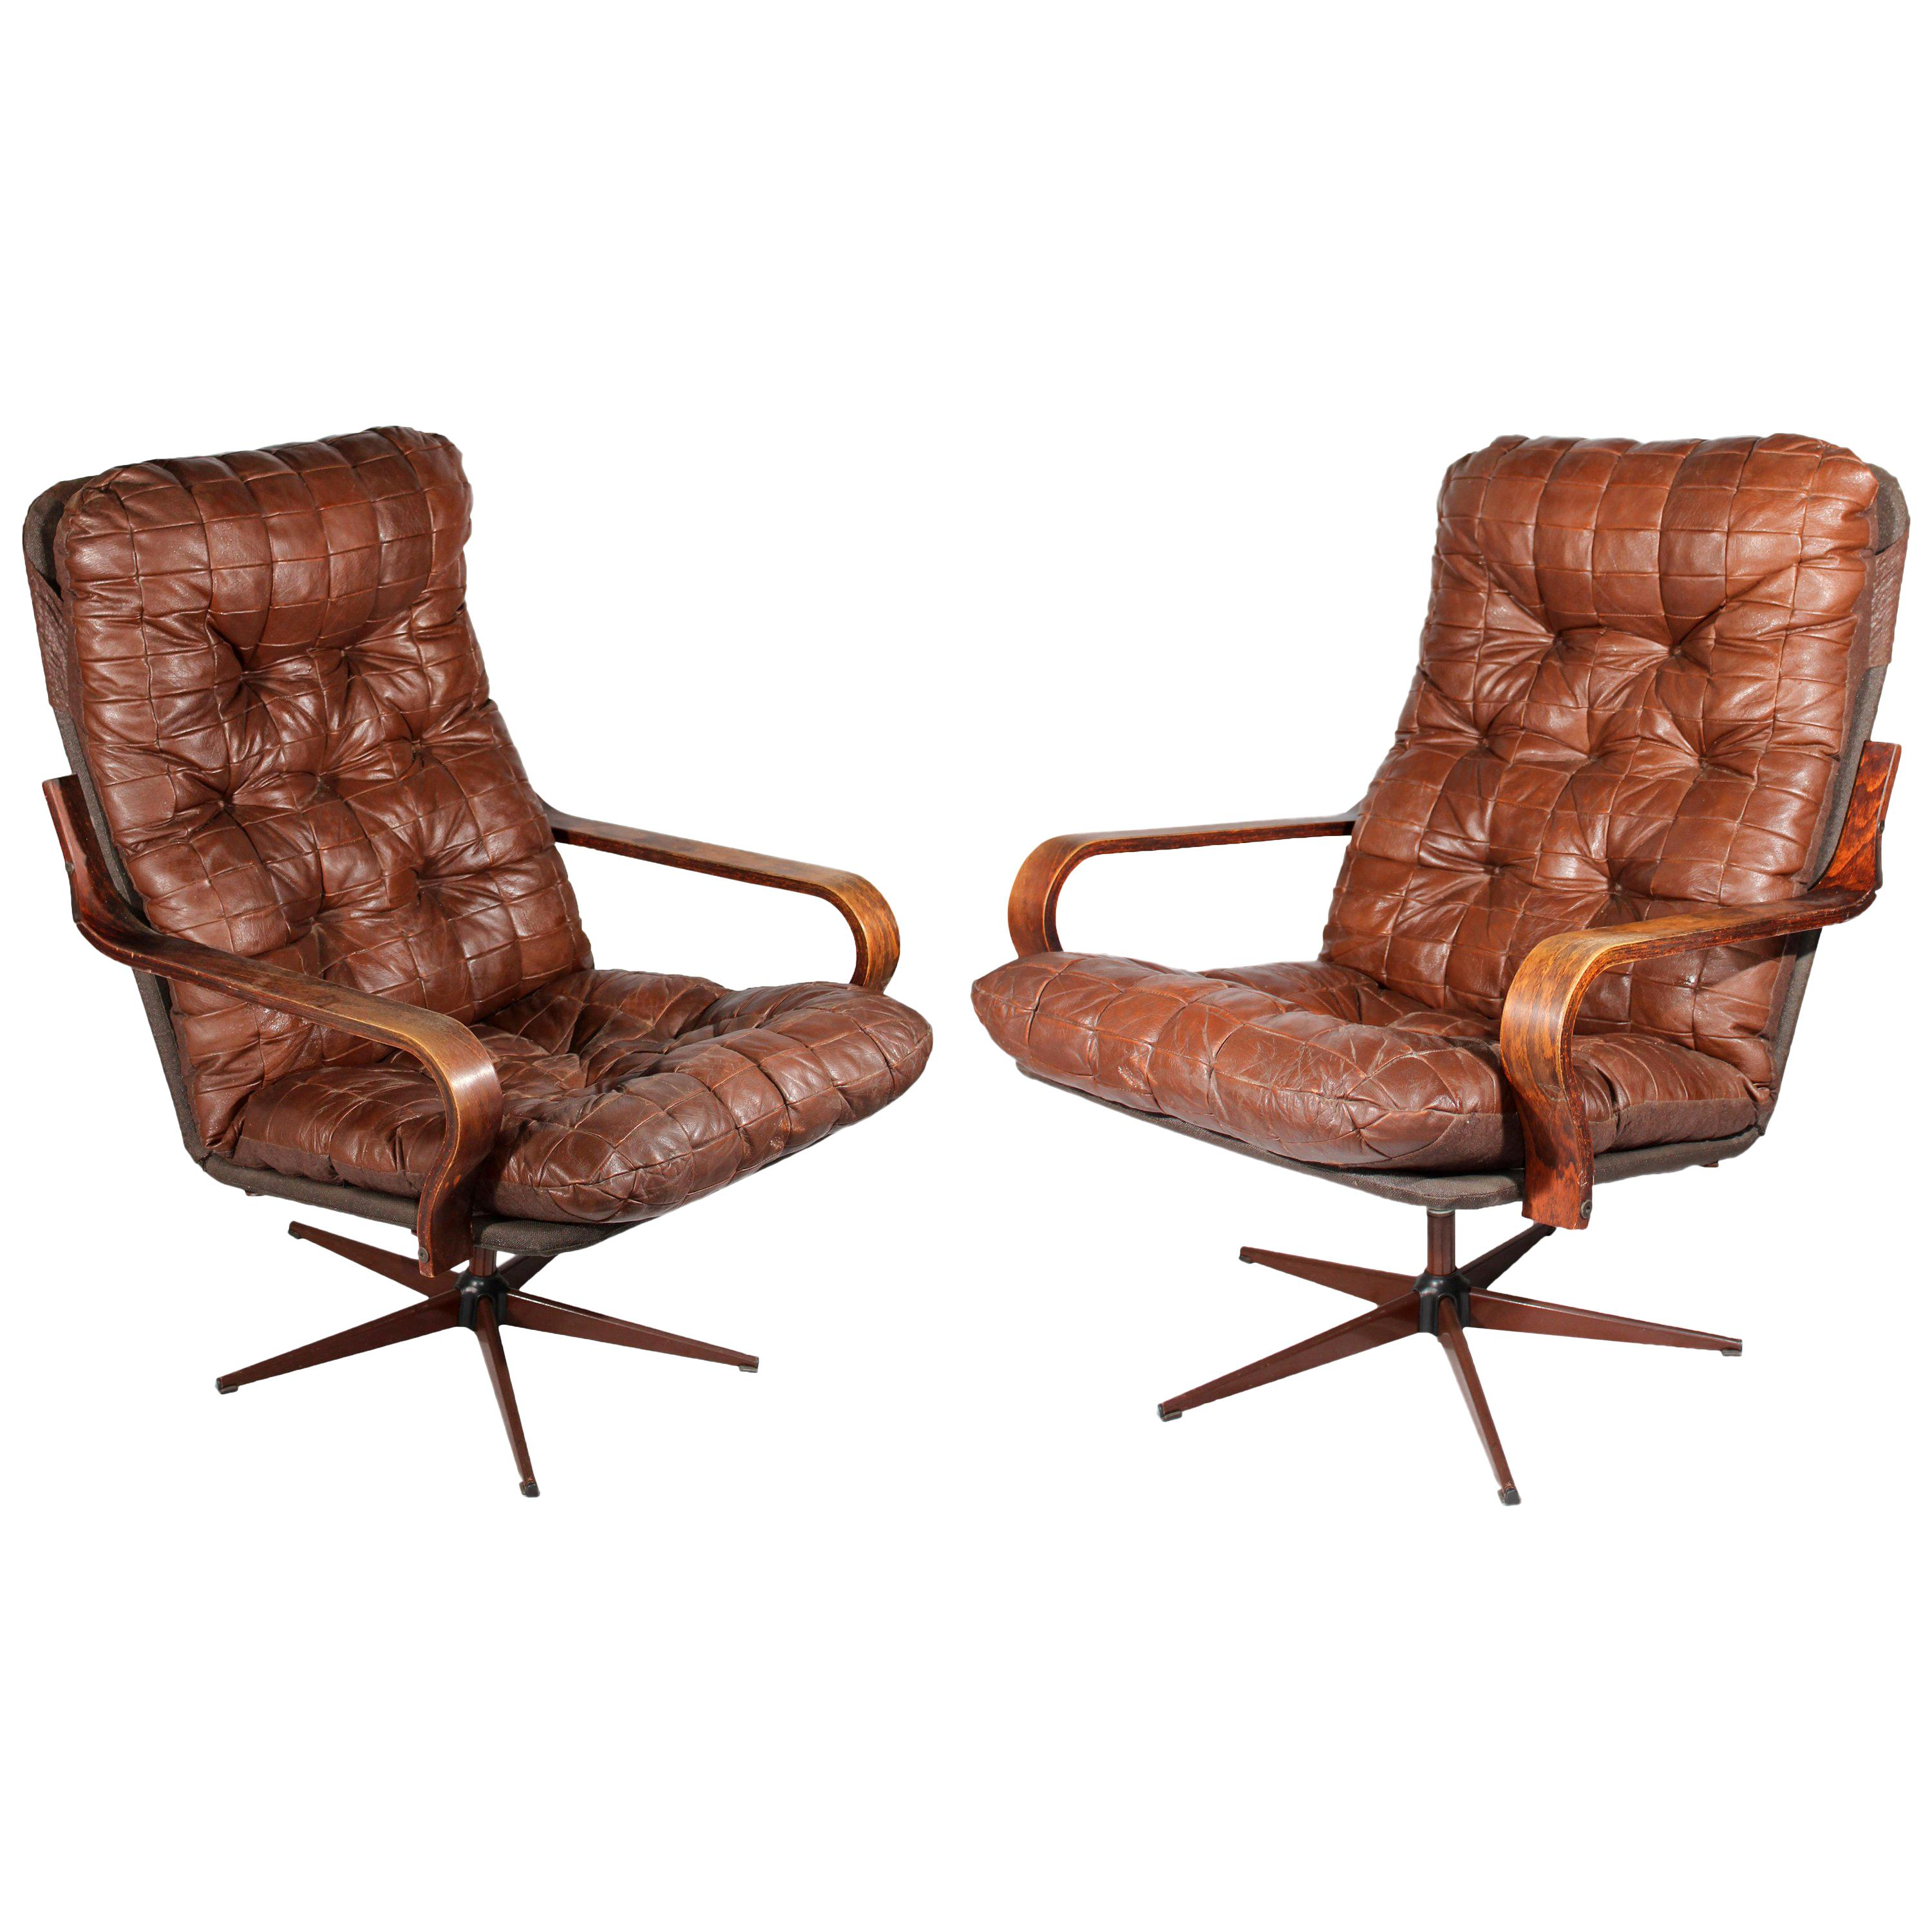 Spanish 1970s Pair of Leather Swivel Armchairs